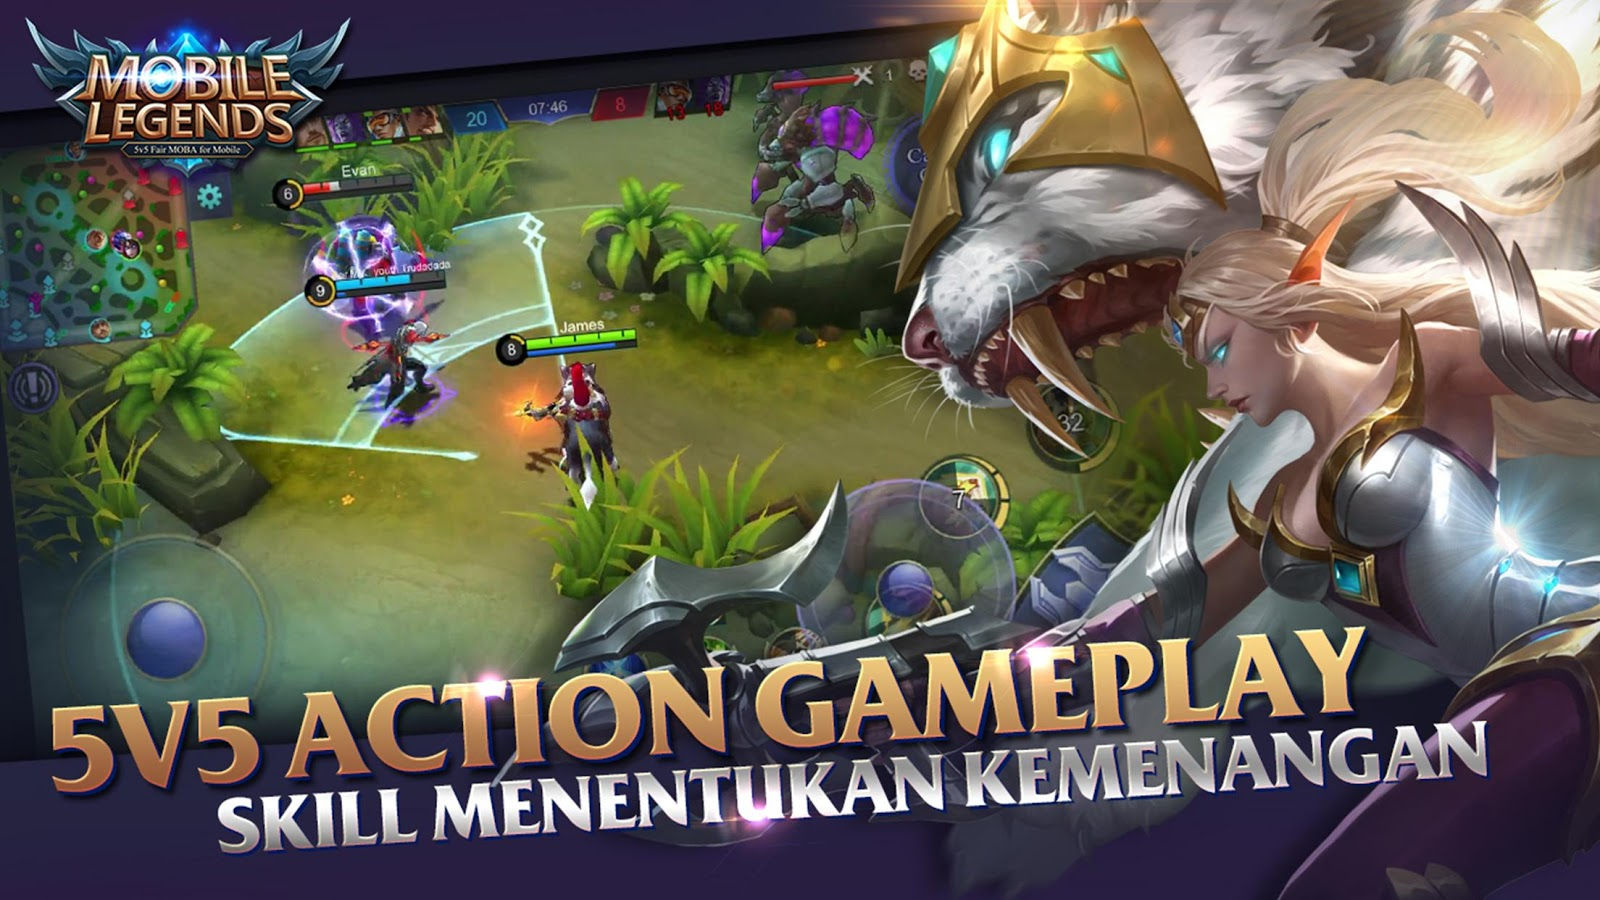 Download Mobile Legends: Bang Bang apk update terbaru